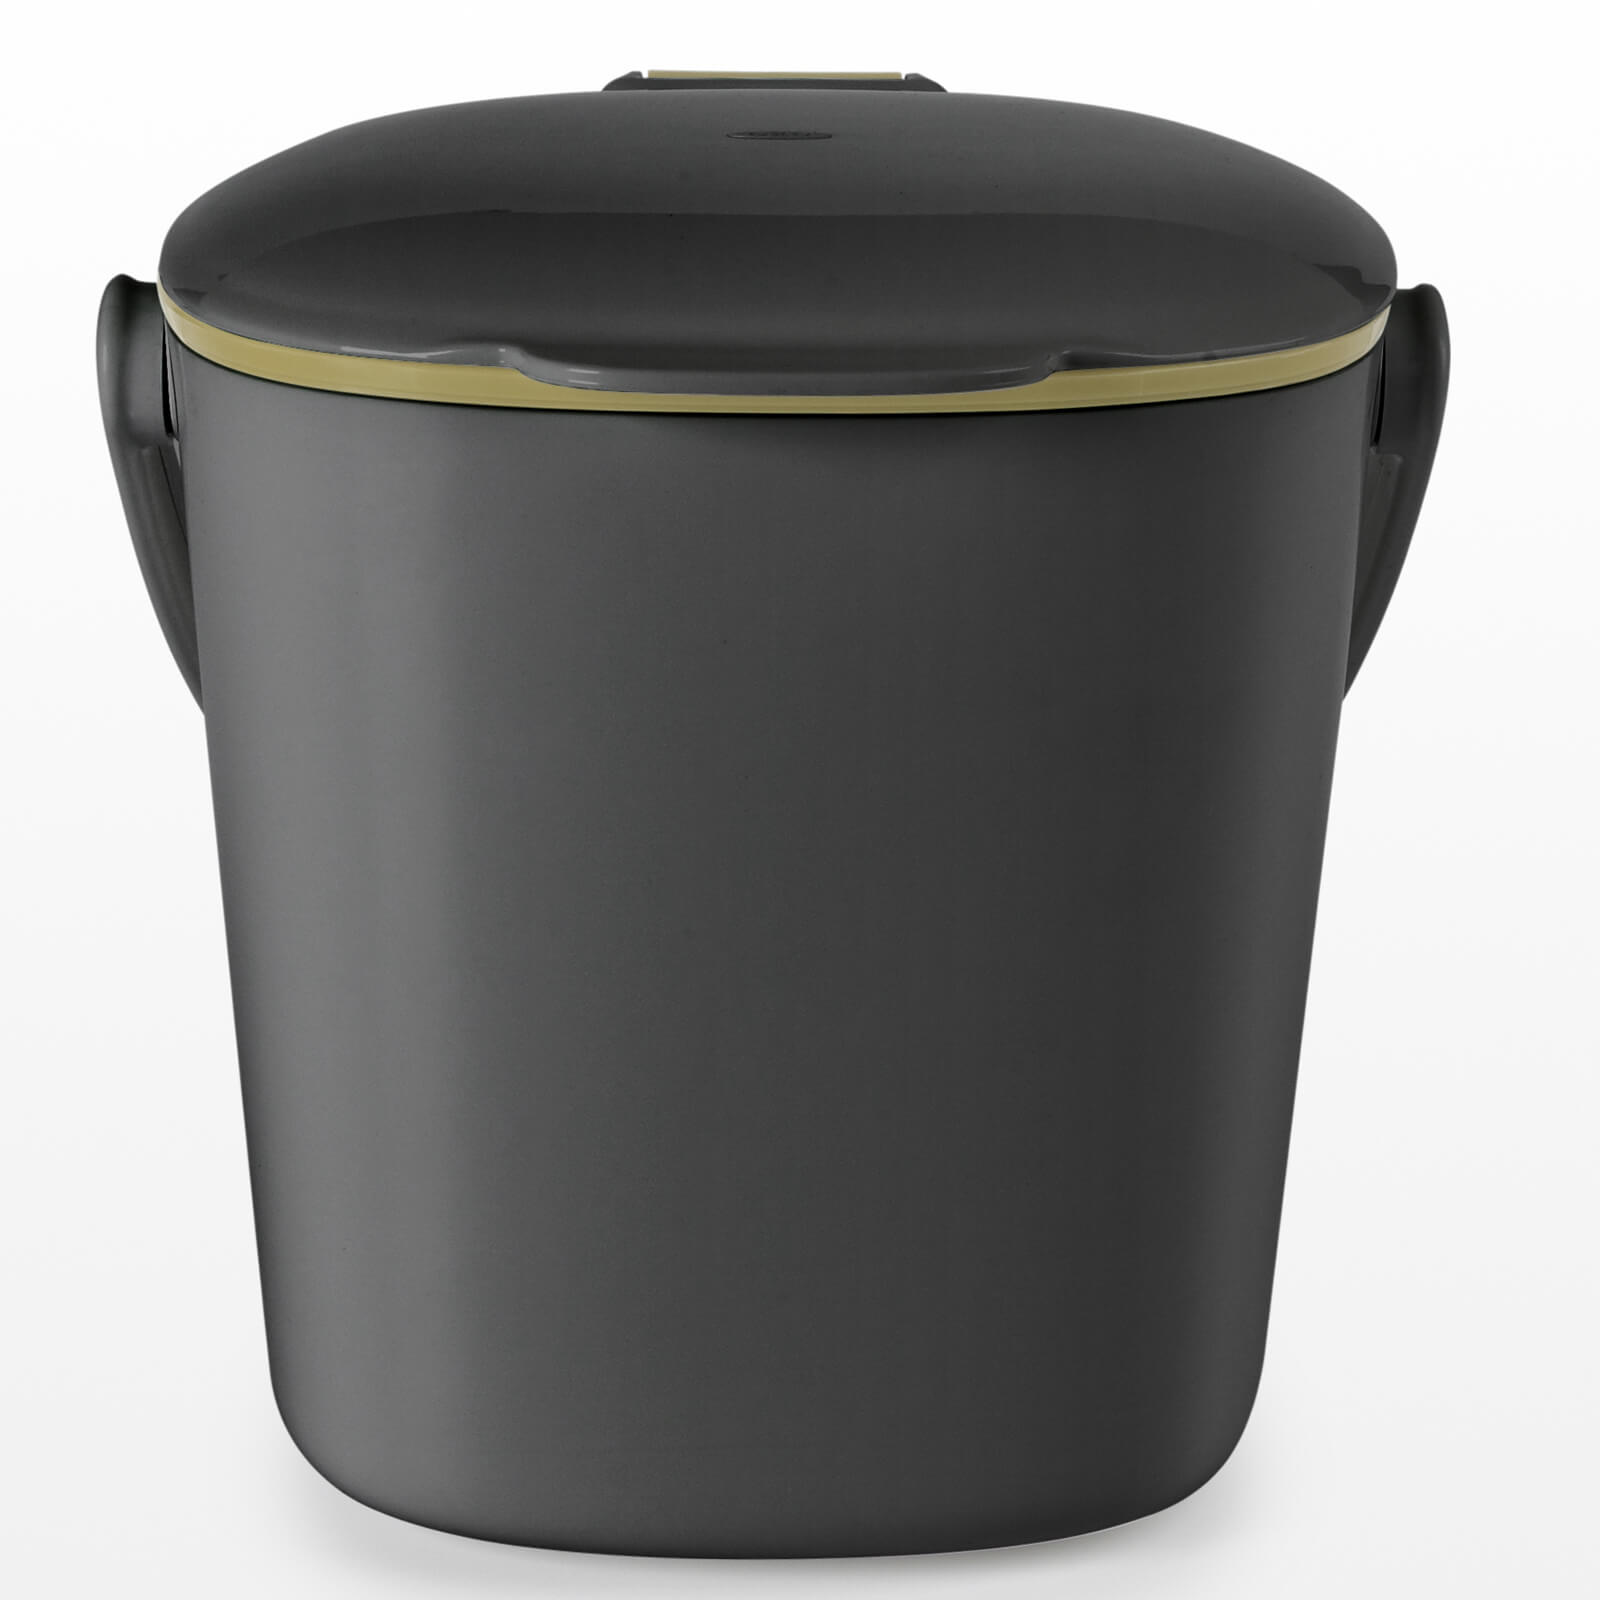 OXO Good Grips Compost Bin - Charcoal